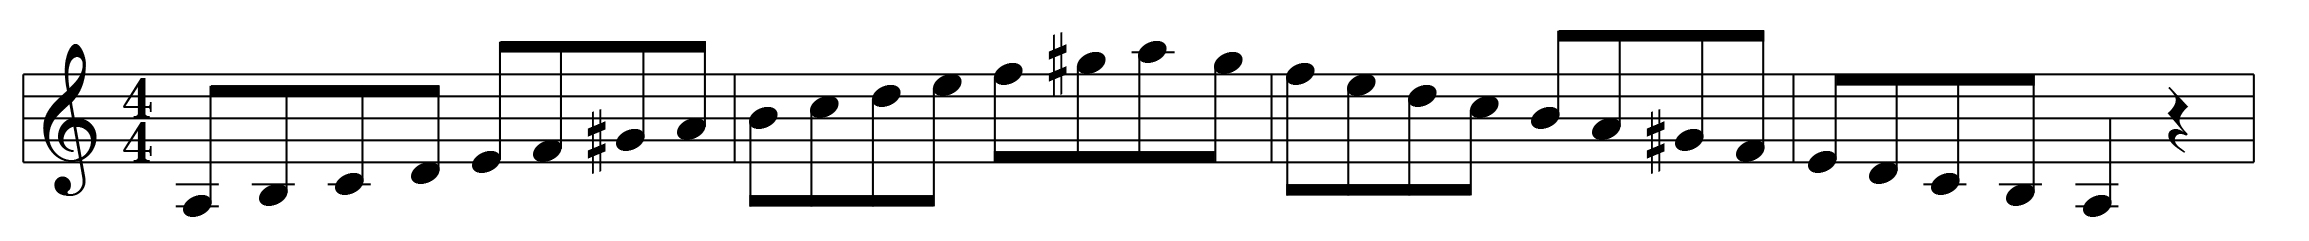 A Minor Harmonic Scale Right Hand